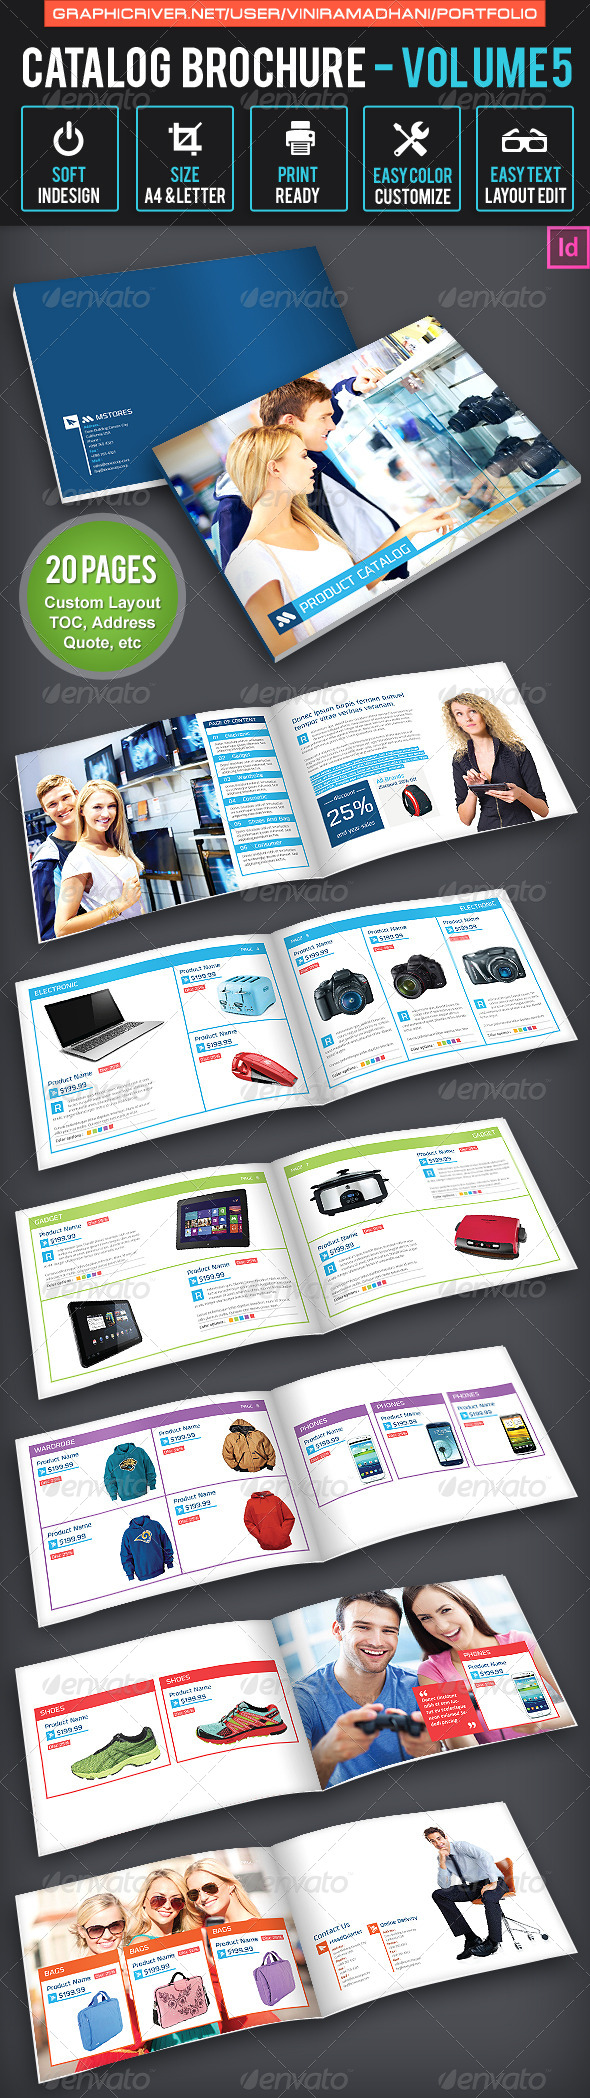 GraphicRiver Product Catalogs Brochure Volume 5 6627643